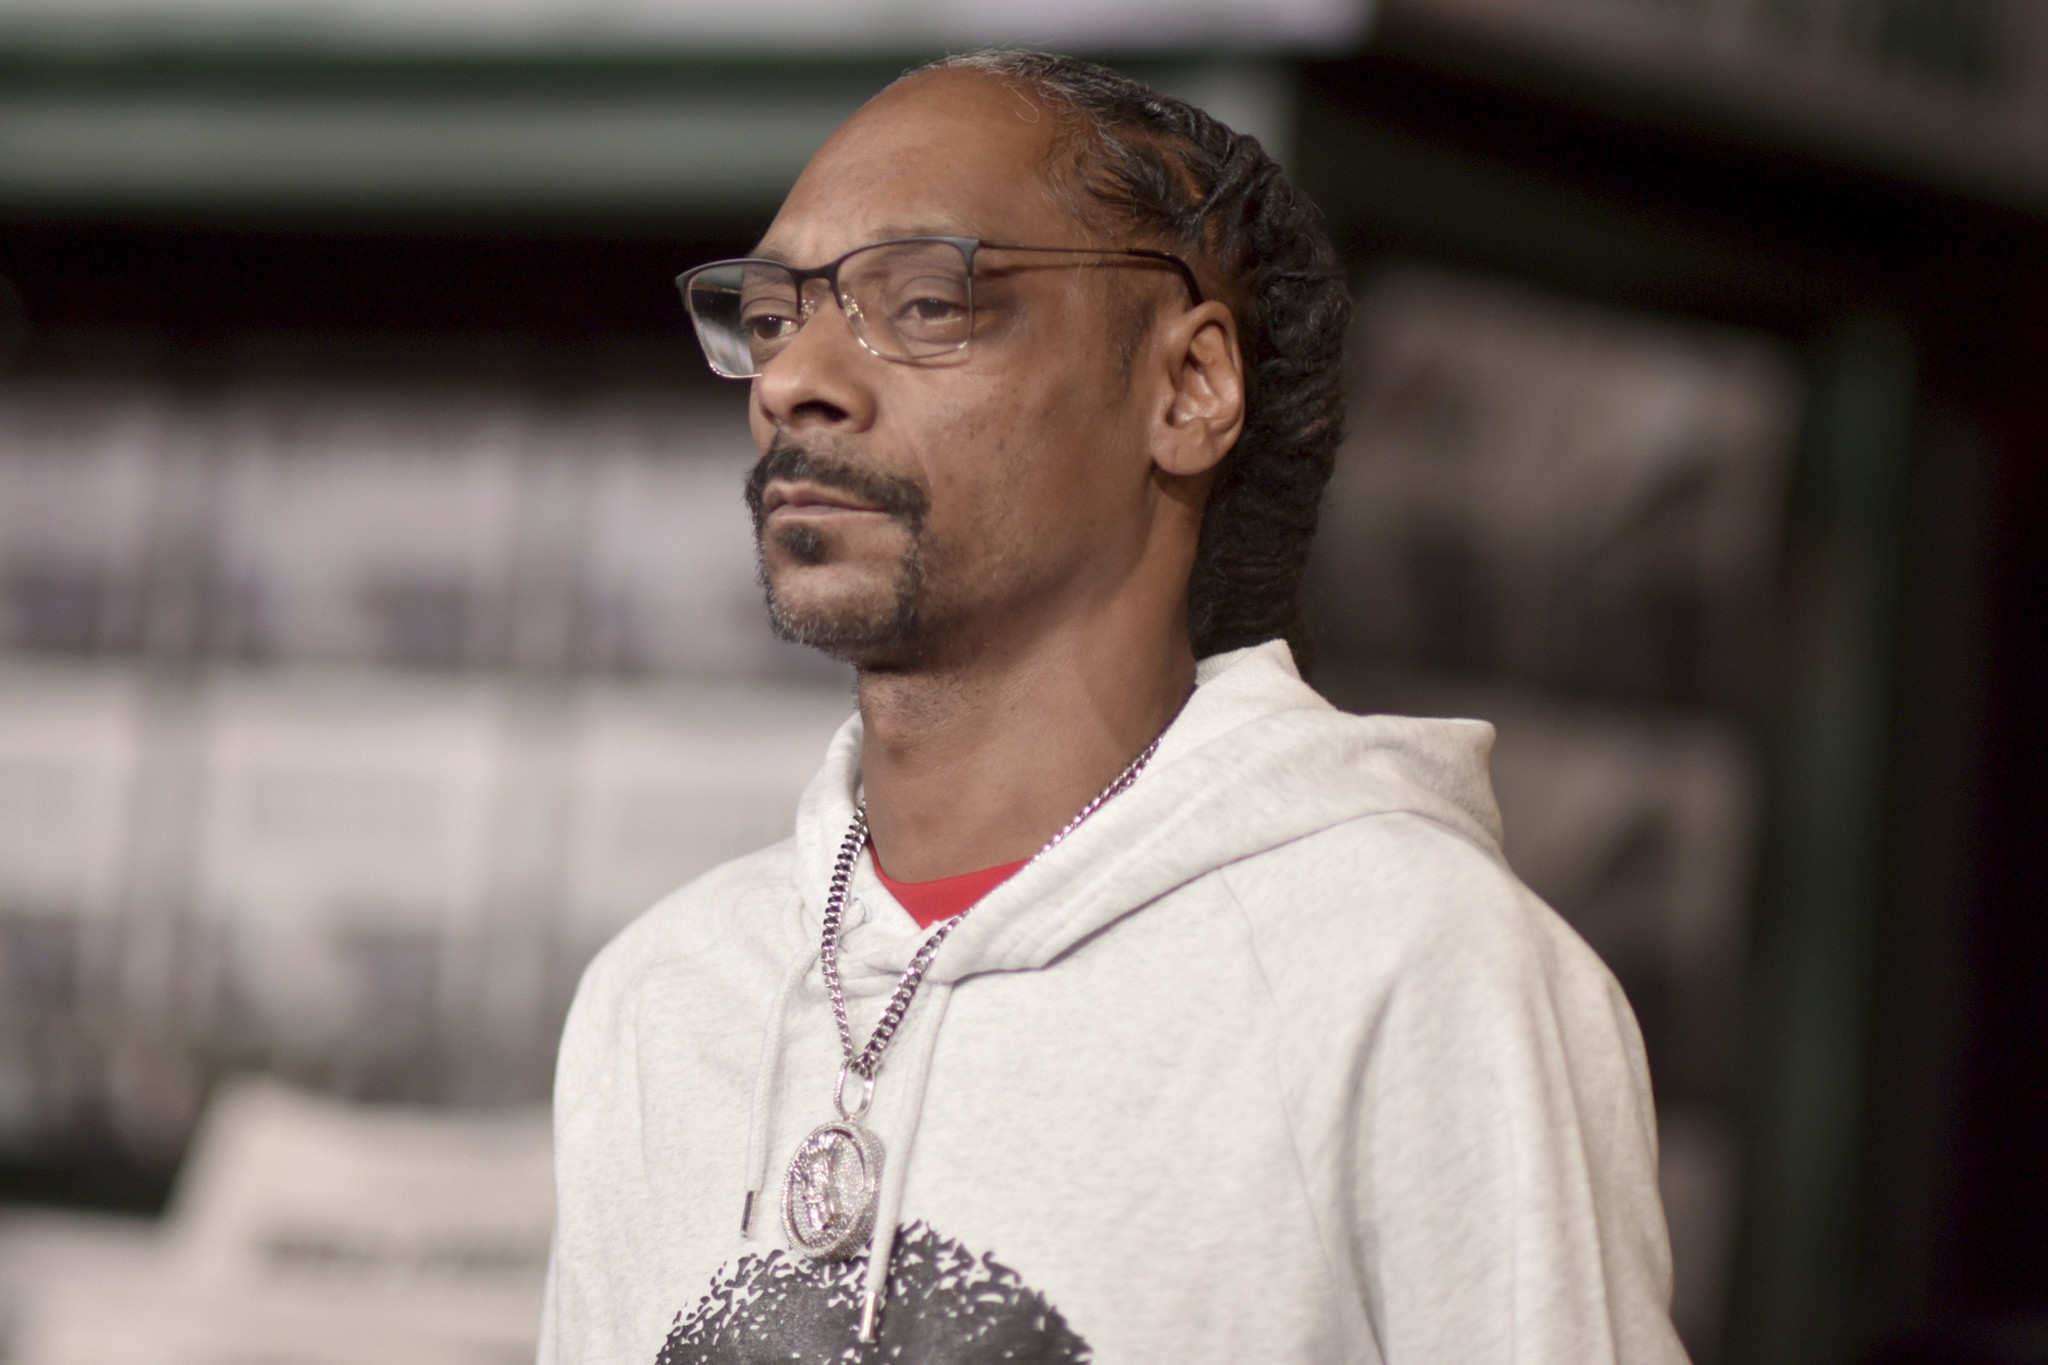 Snoop Dogg tells why he ripped Gayle King over Kobe Bryant question in Lisa Leslie interview